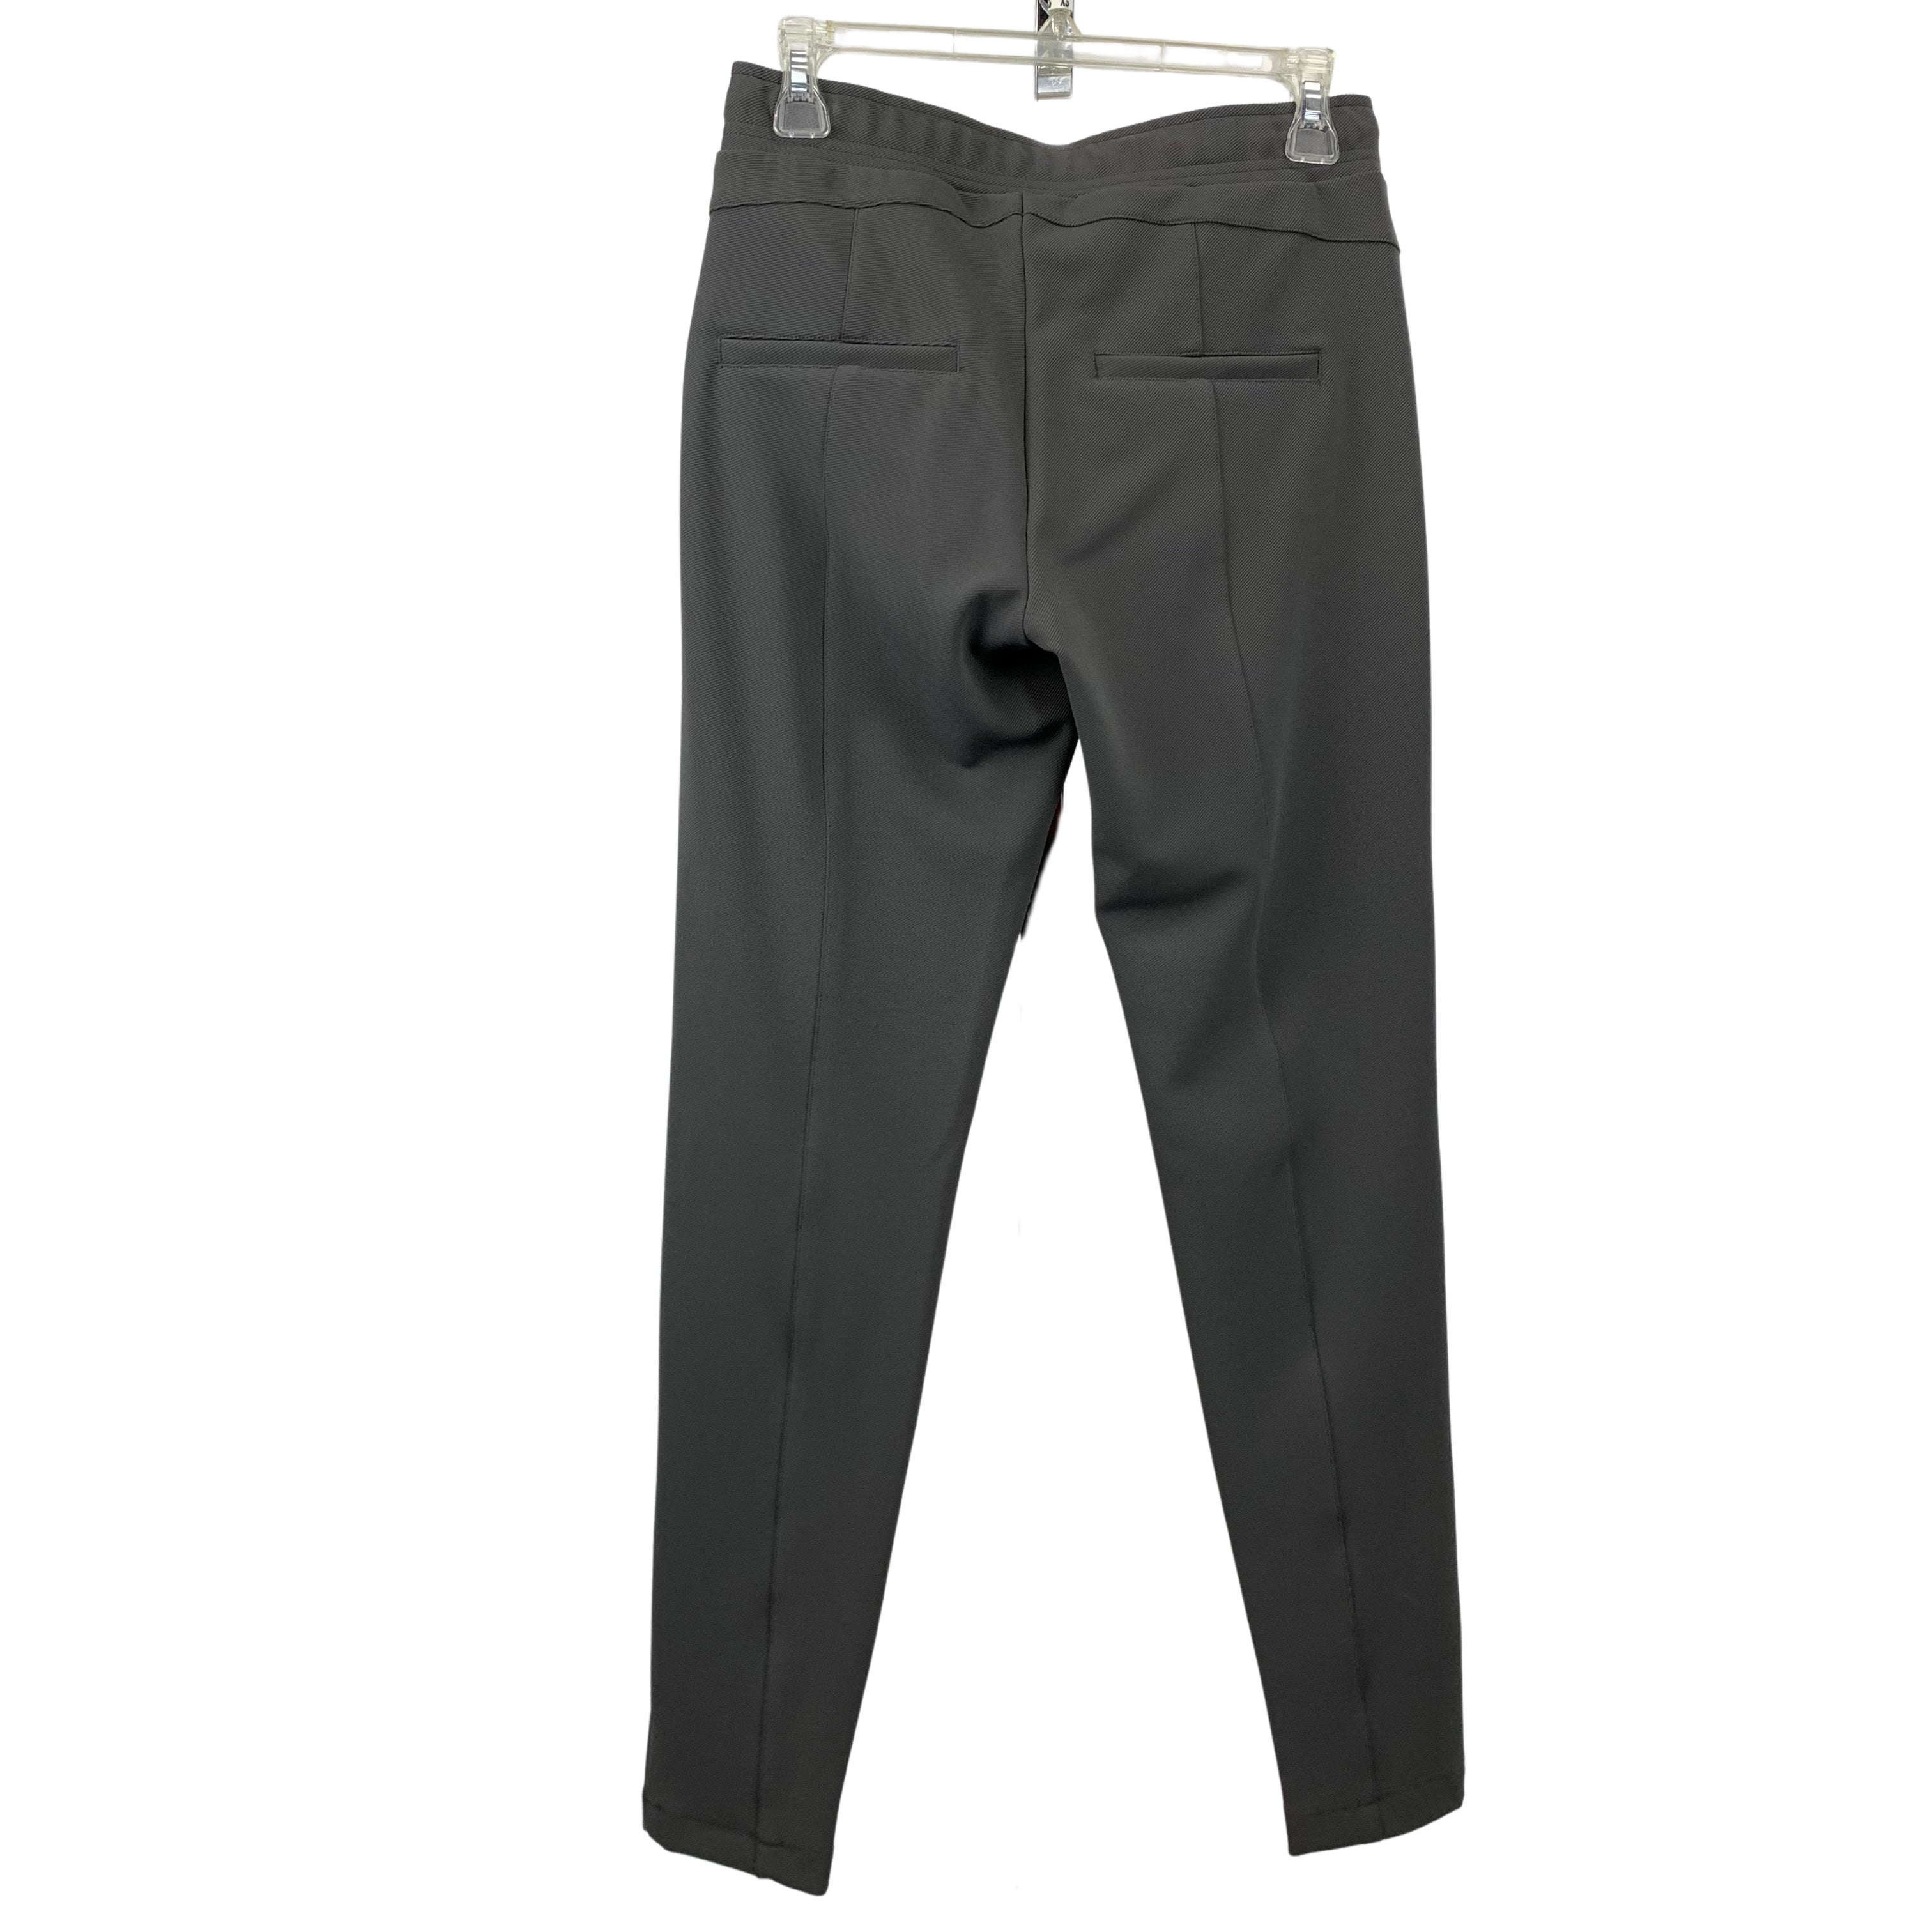 Cambio Pull On Grey Pants - Chic Thrills Boutique